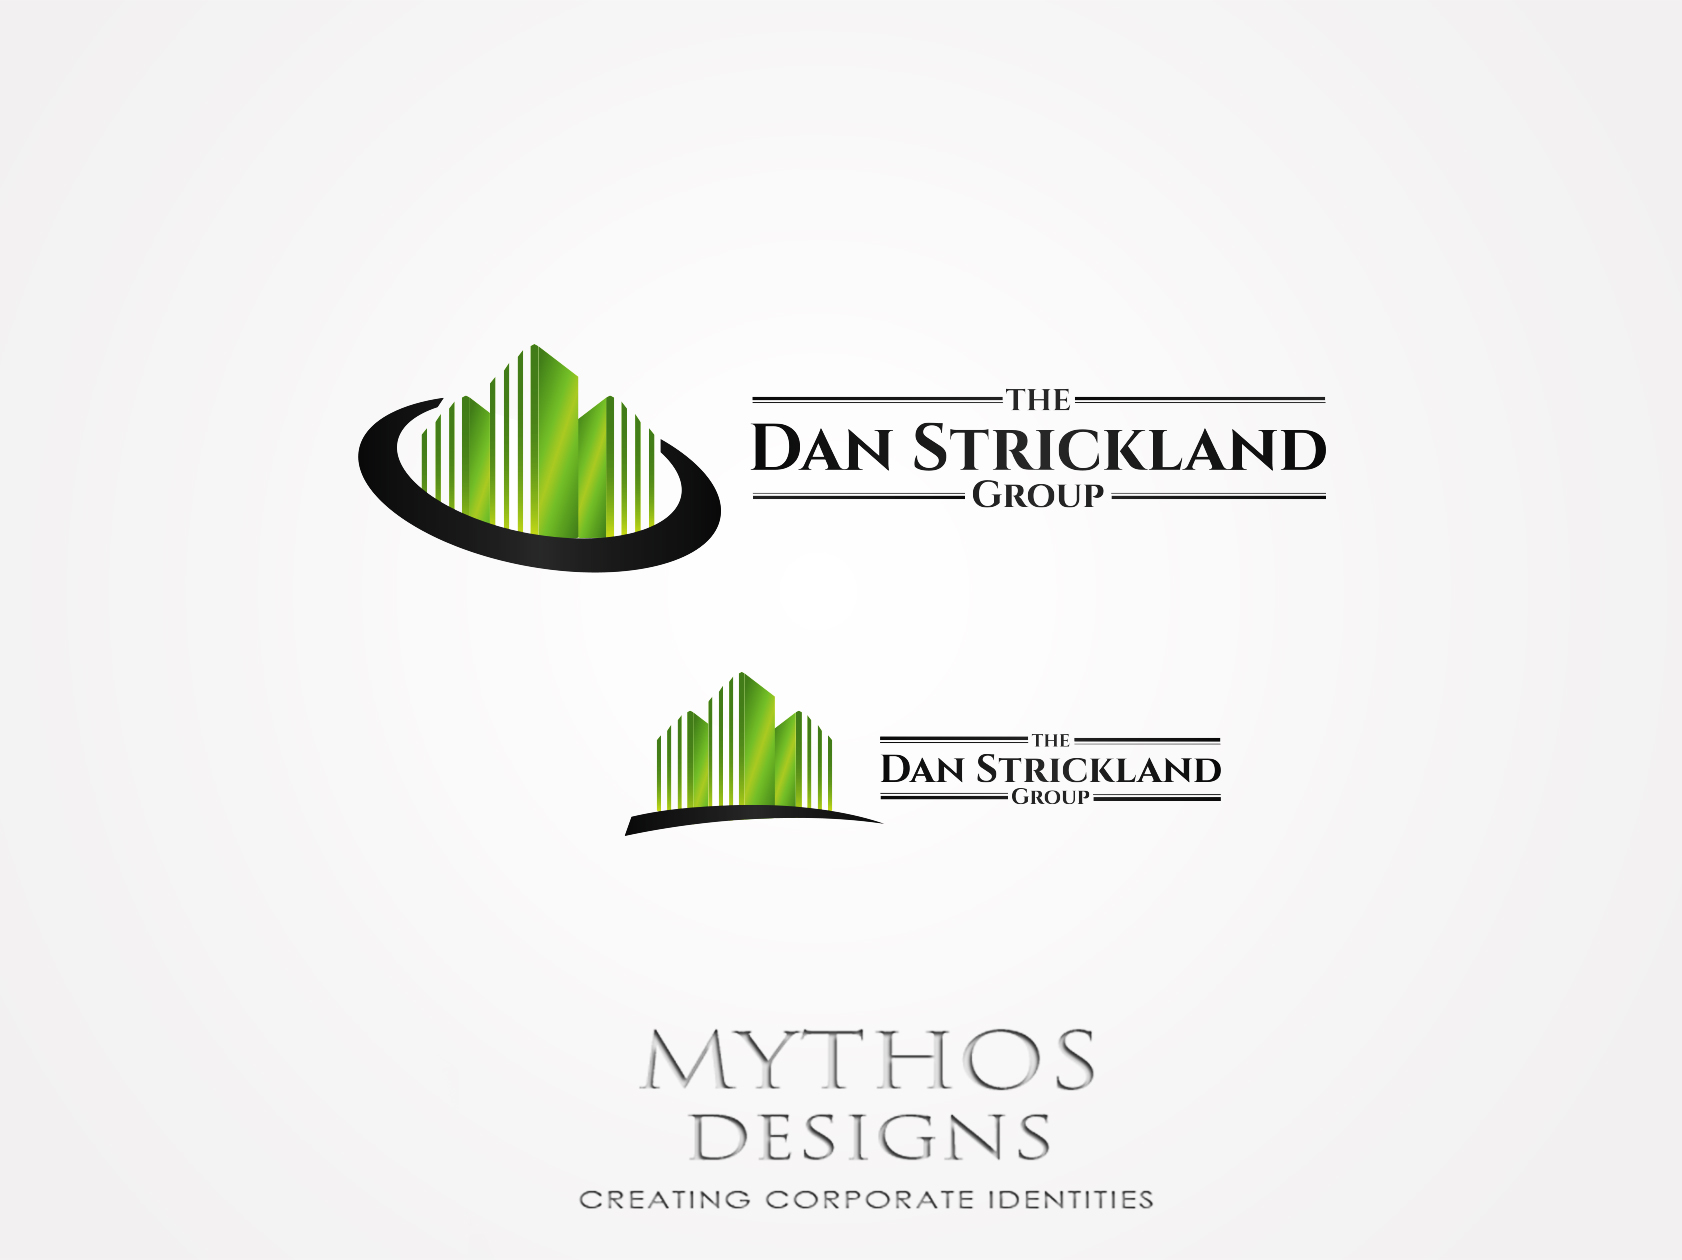 Logo Design by Mythos Designs - Entry No. 105 in the Logo Design Contest Creative Logo Design for The Dan Strickland Group.